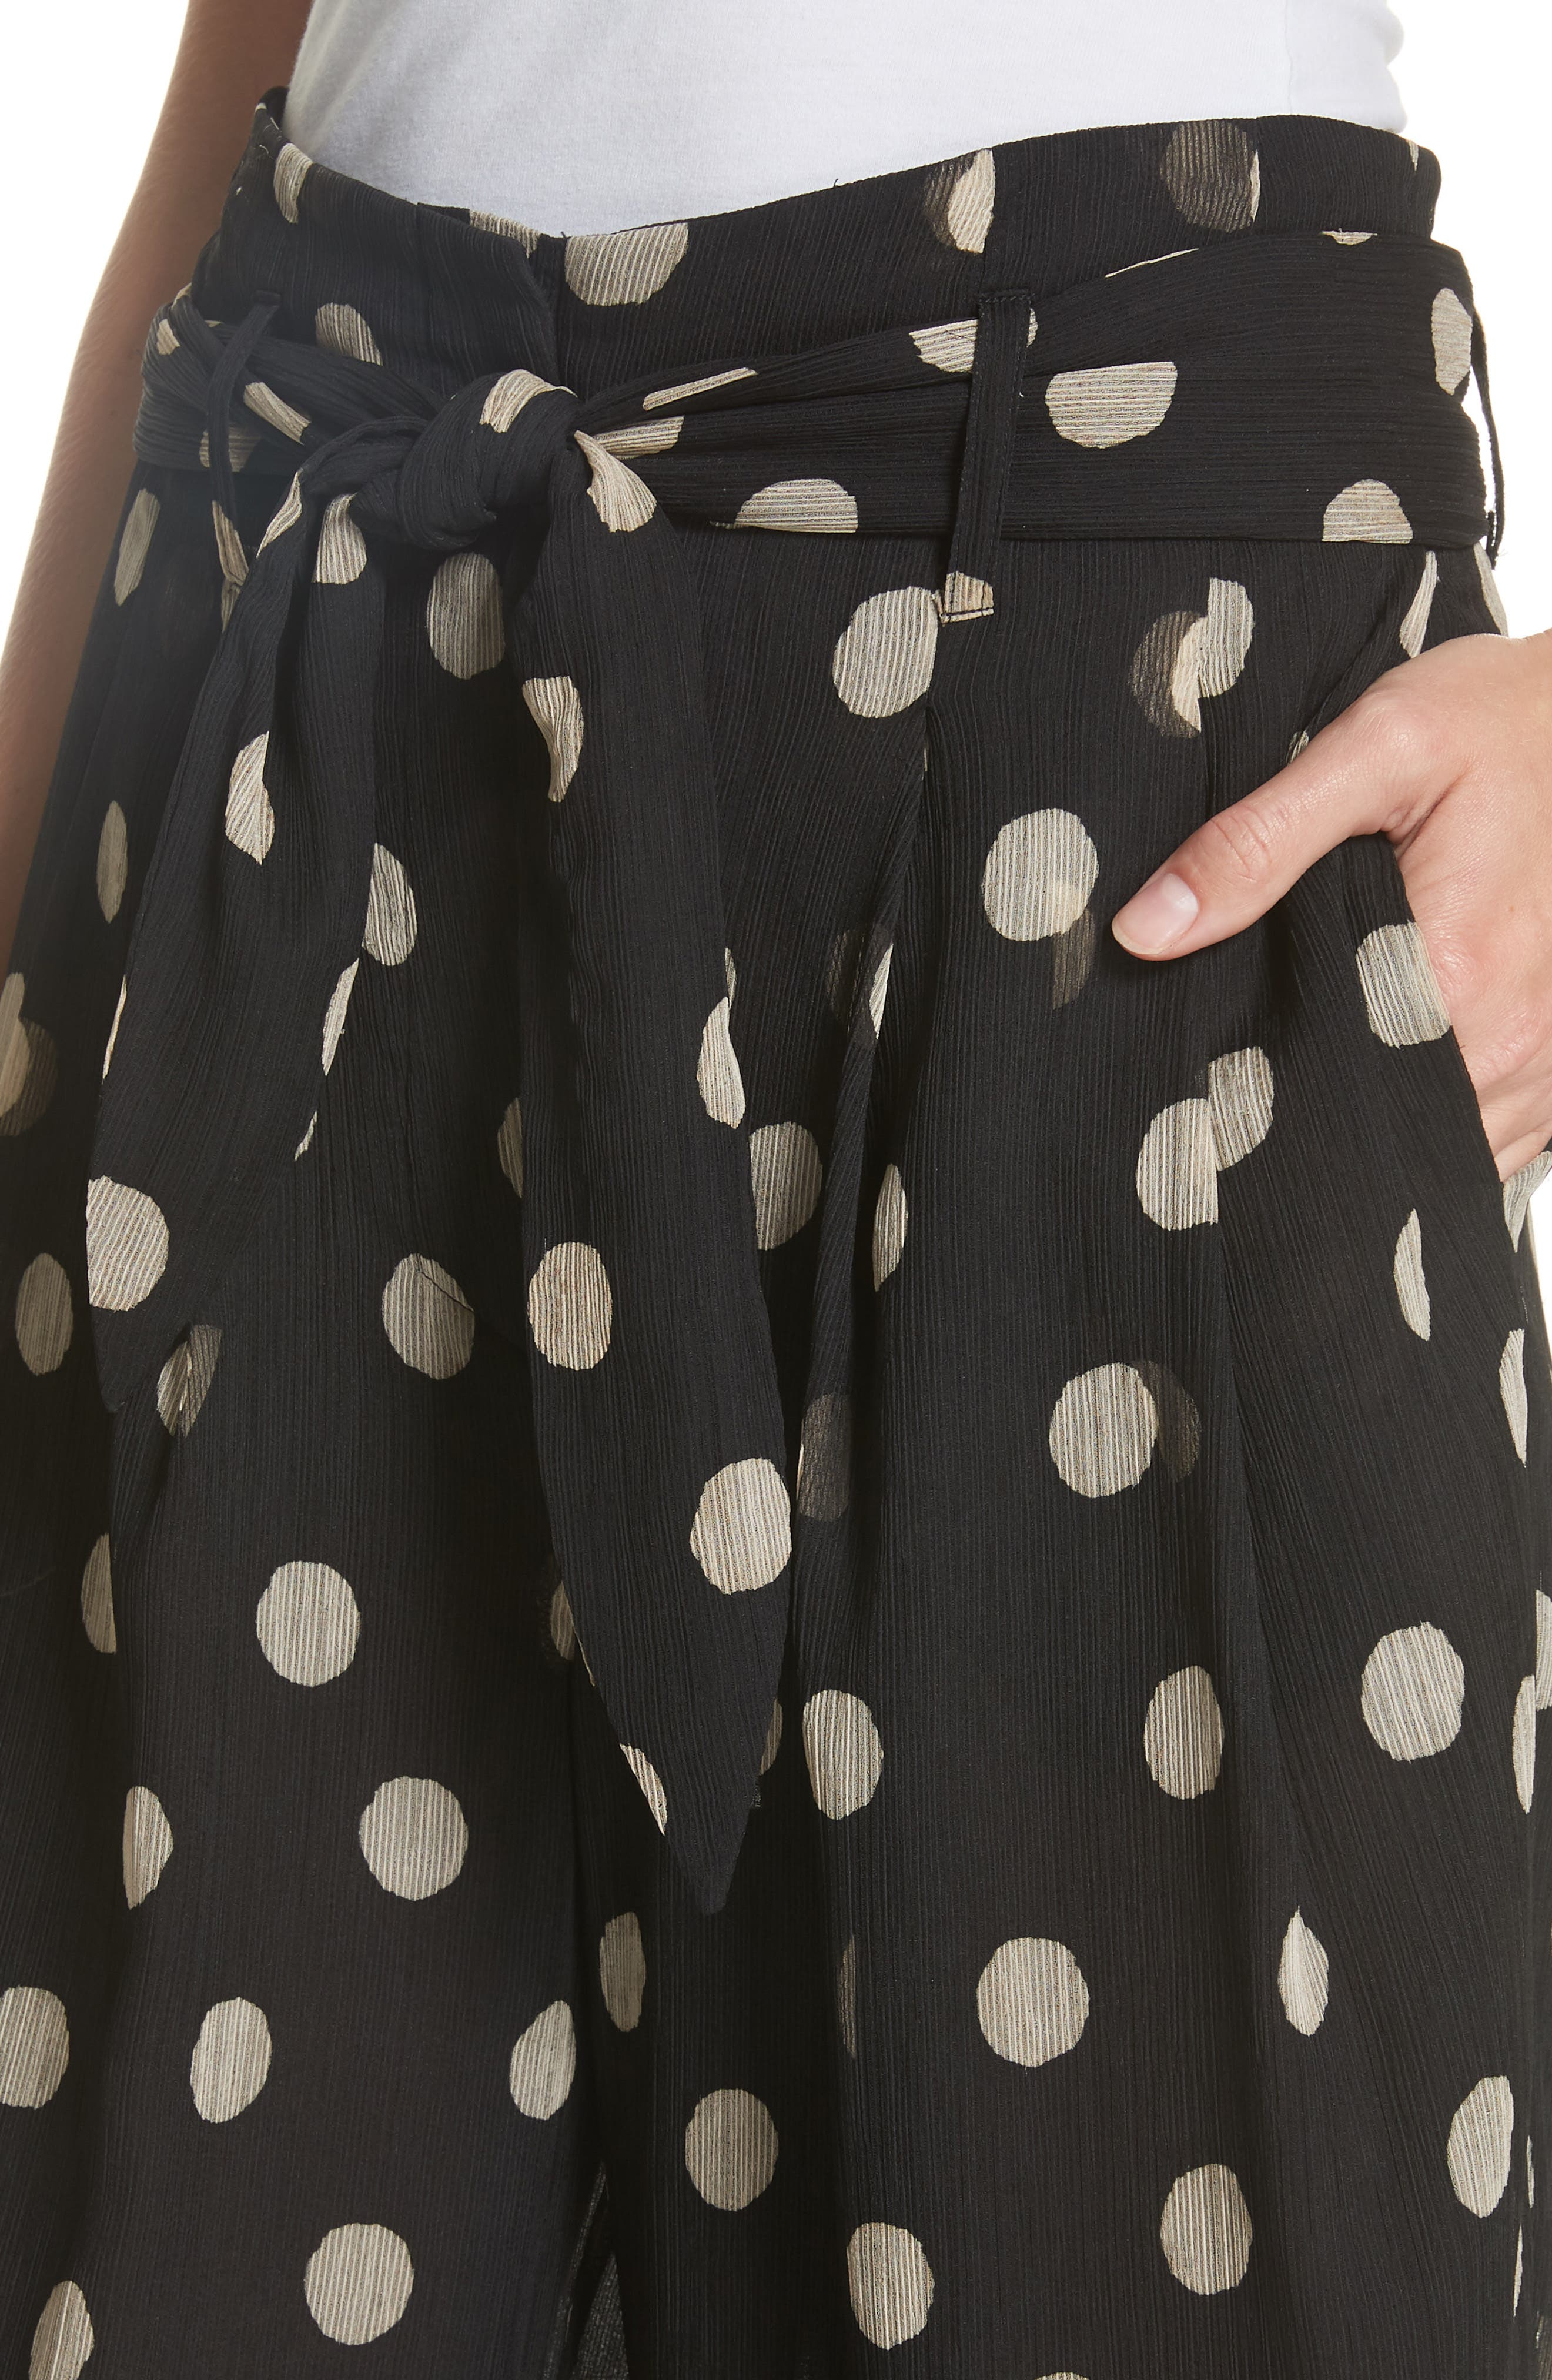 Nevada Polka Dot Chiffon Pants,                             Alternate thumbnail 4, color,                             POLKA DOT